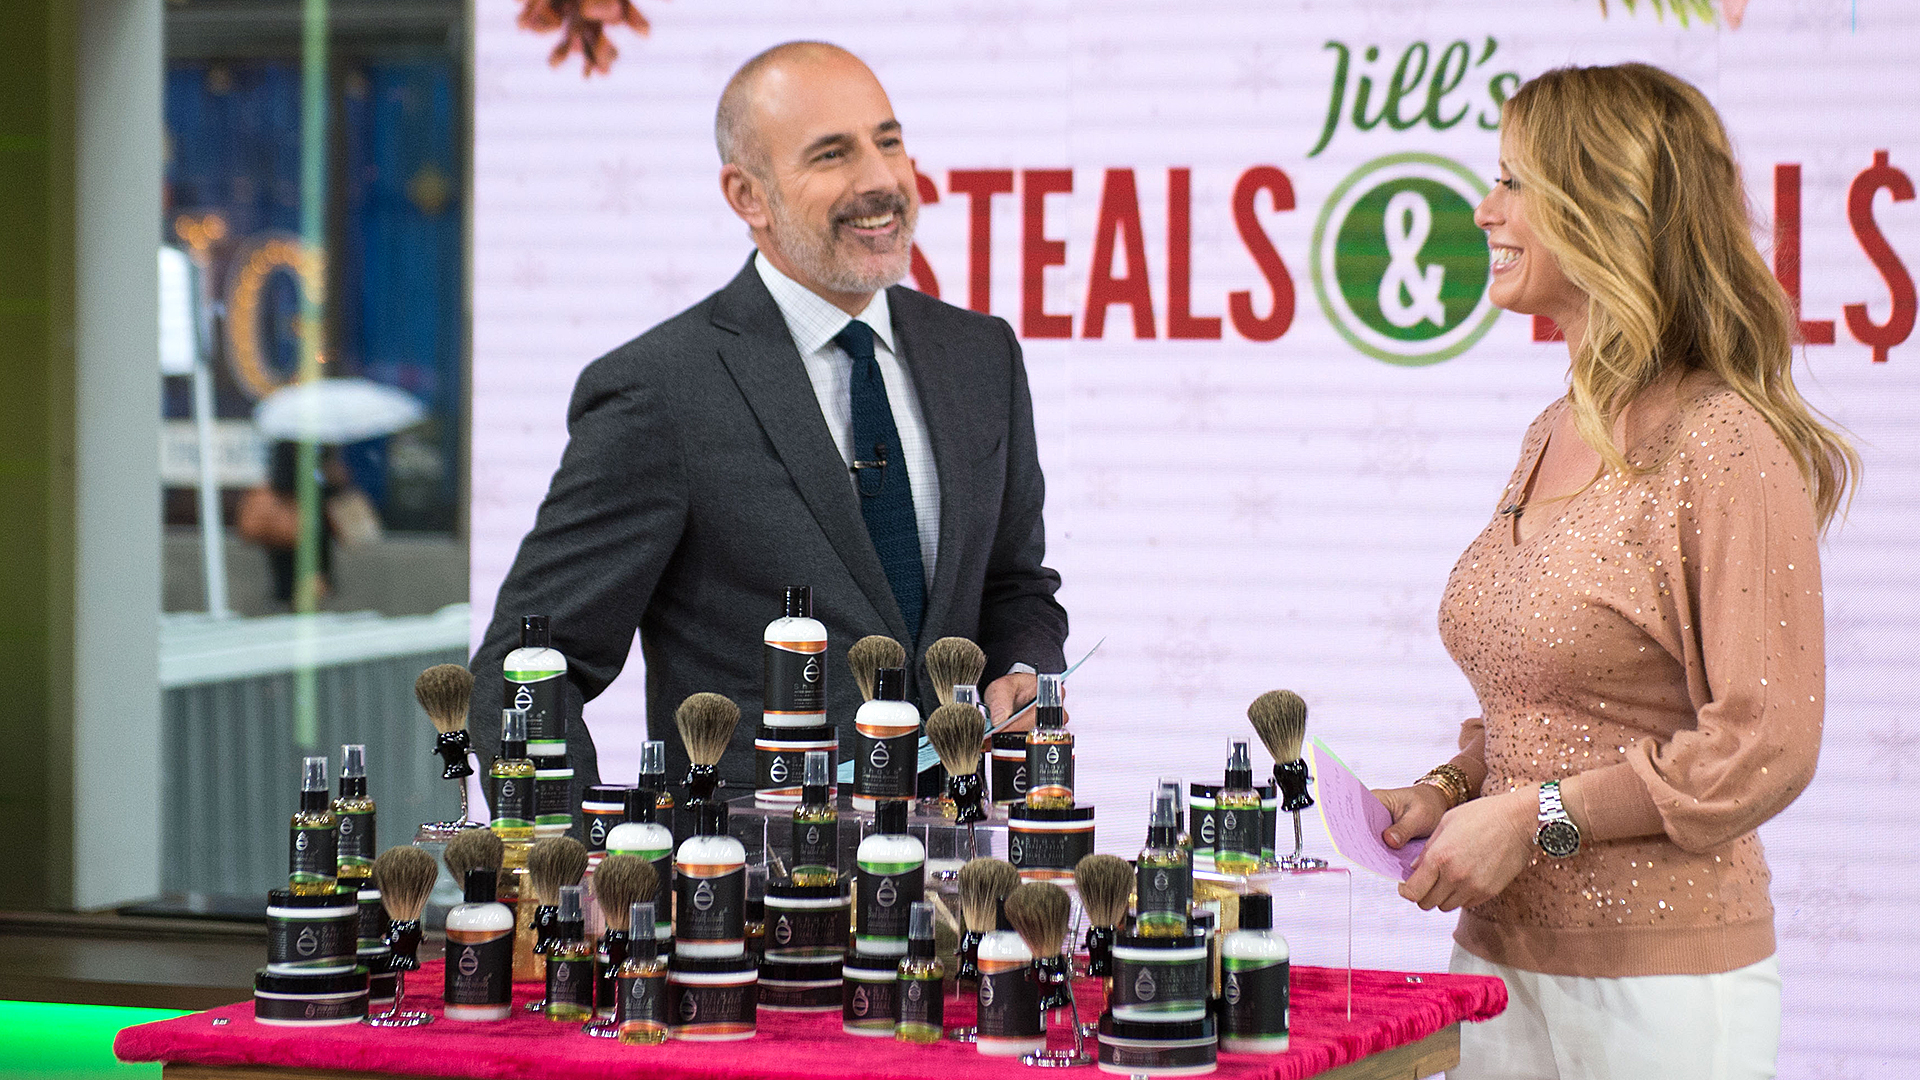 Gma deals and steals today show